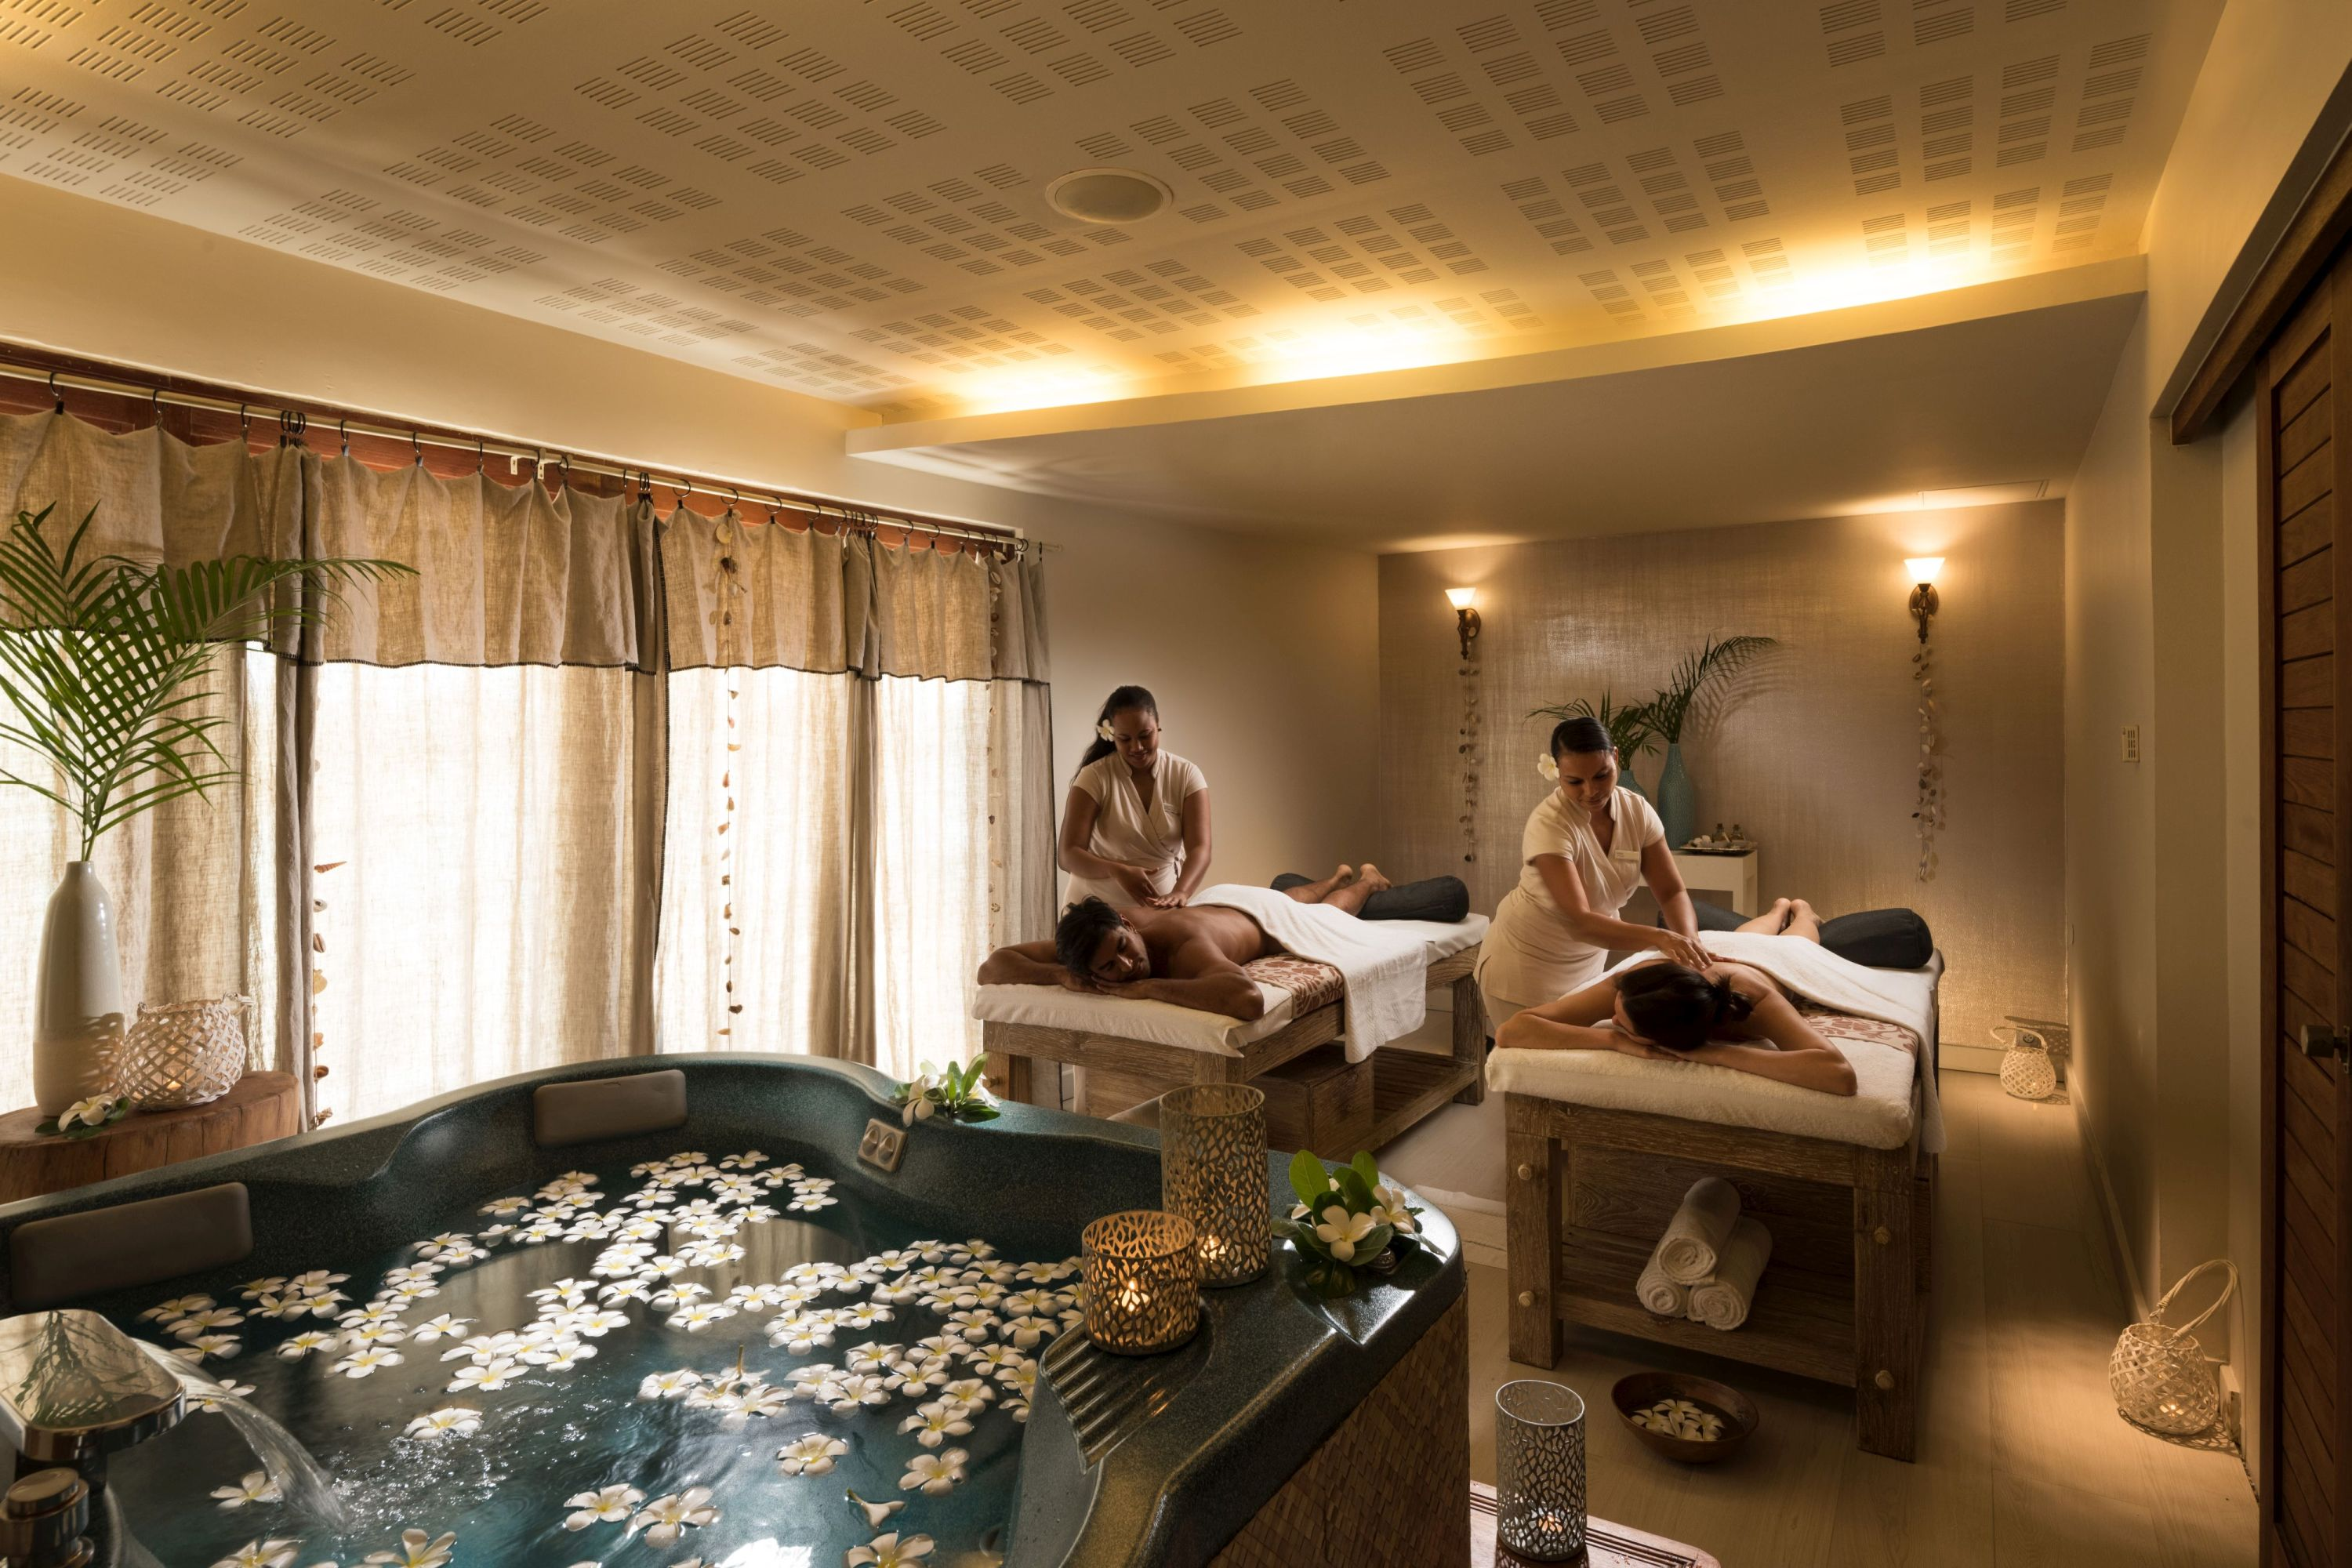 https://tahititourisme.cn/wp-content/uploads/2019/06/Spa-Treatment-Room.jpg